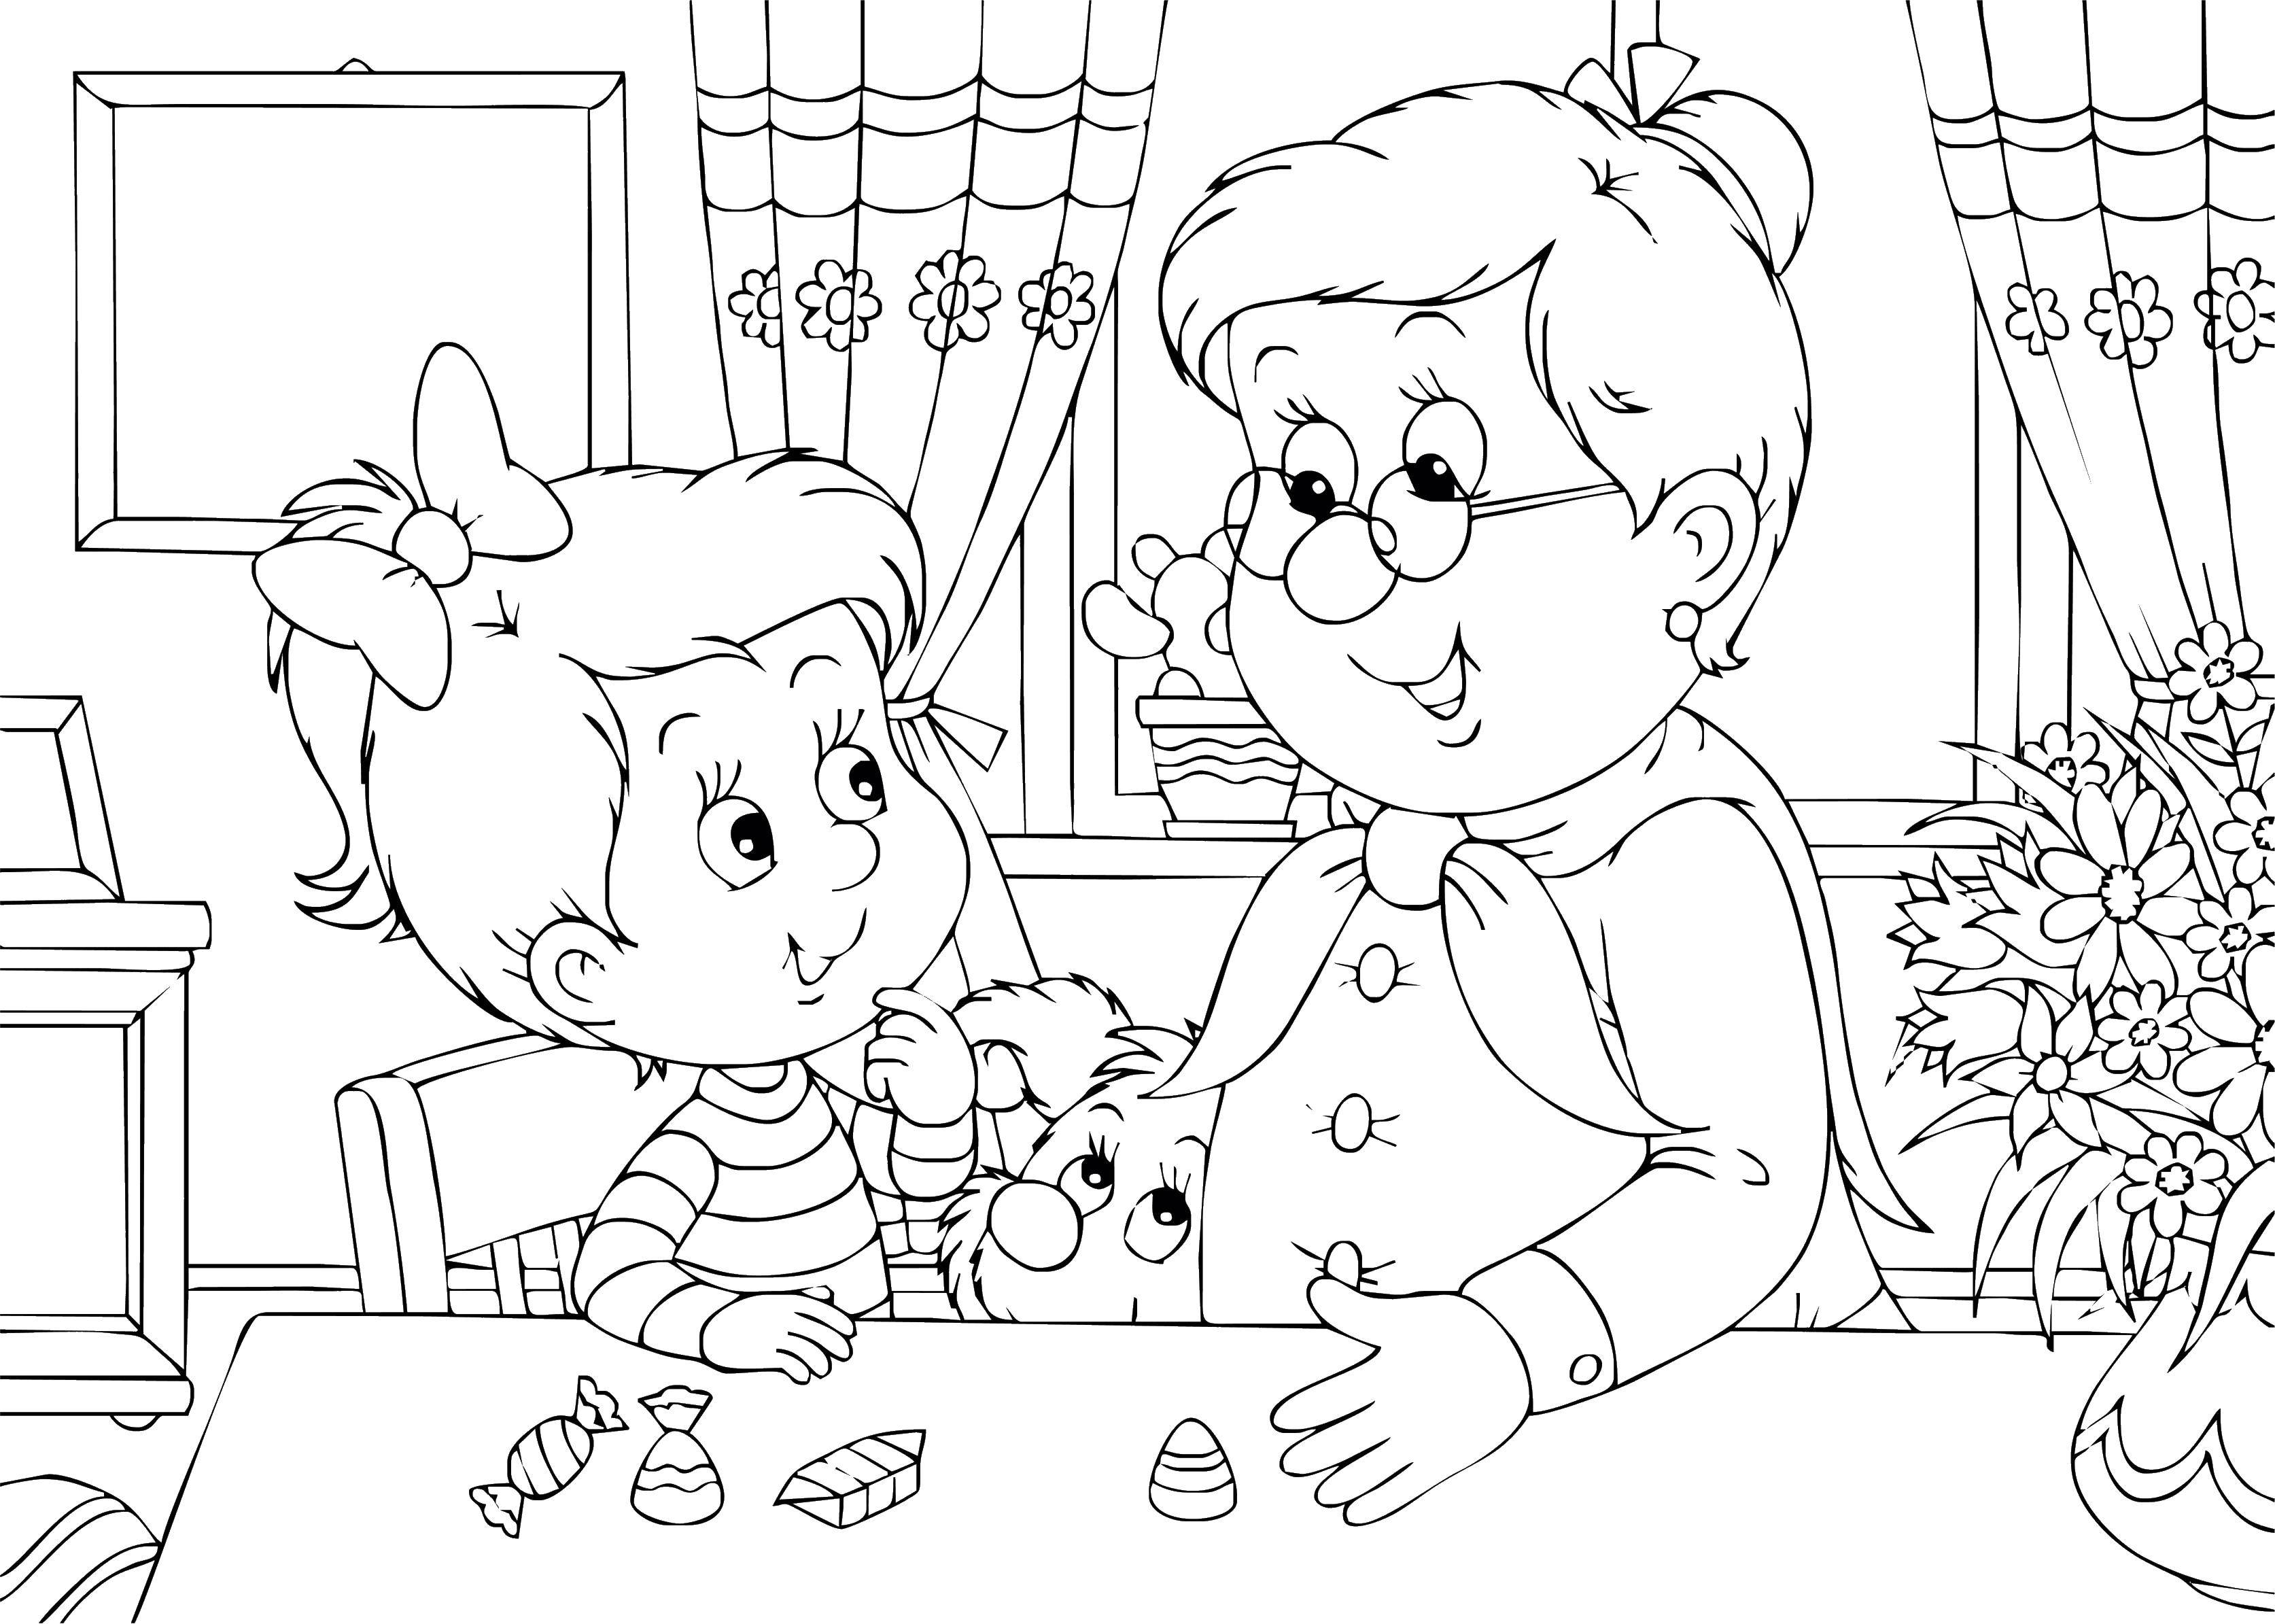 Coloring sheet Coloring pages for kids Download Instrument, drum.  Print ,Musical instrument,